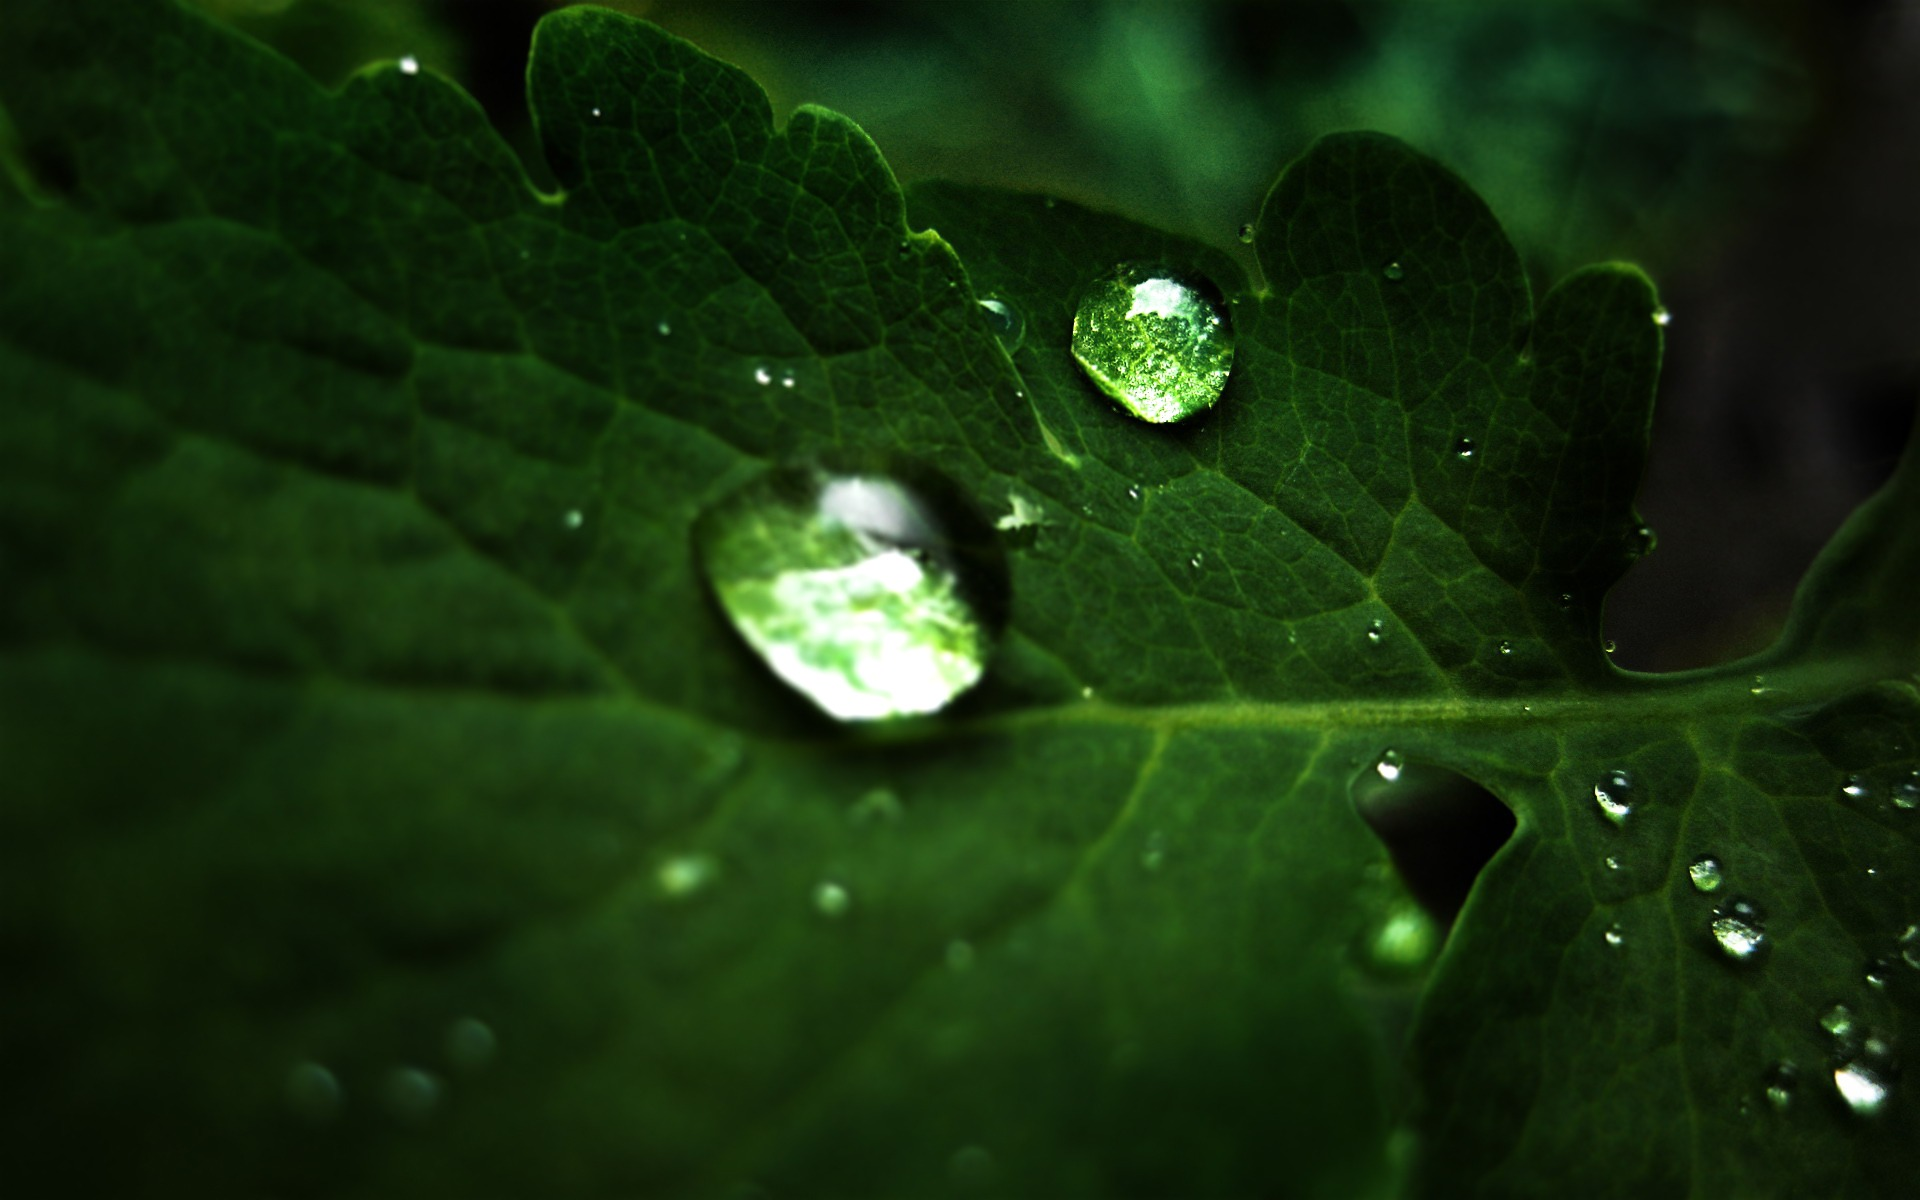 Drop Of Water Falling From A Leaf Dark Background Wallpaper Hd Widescreen Wallpaper Pflanzen 3 1920x1200 Wallpaper